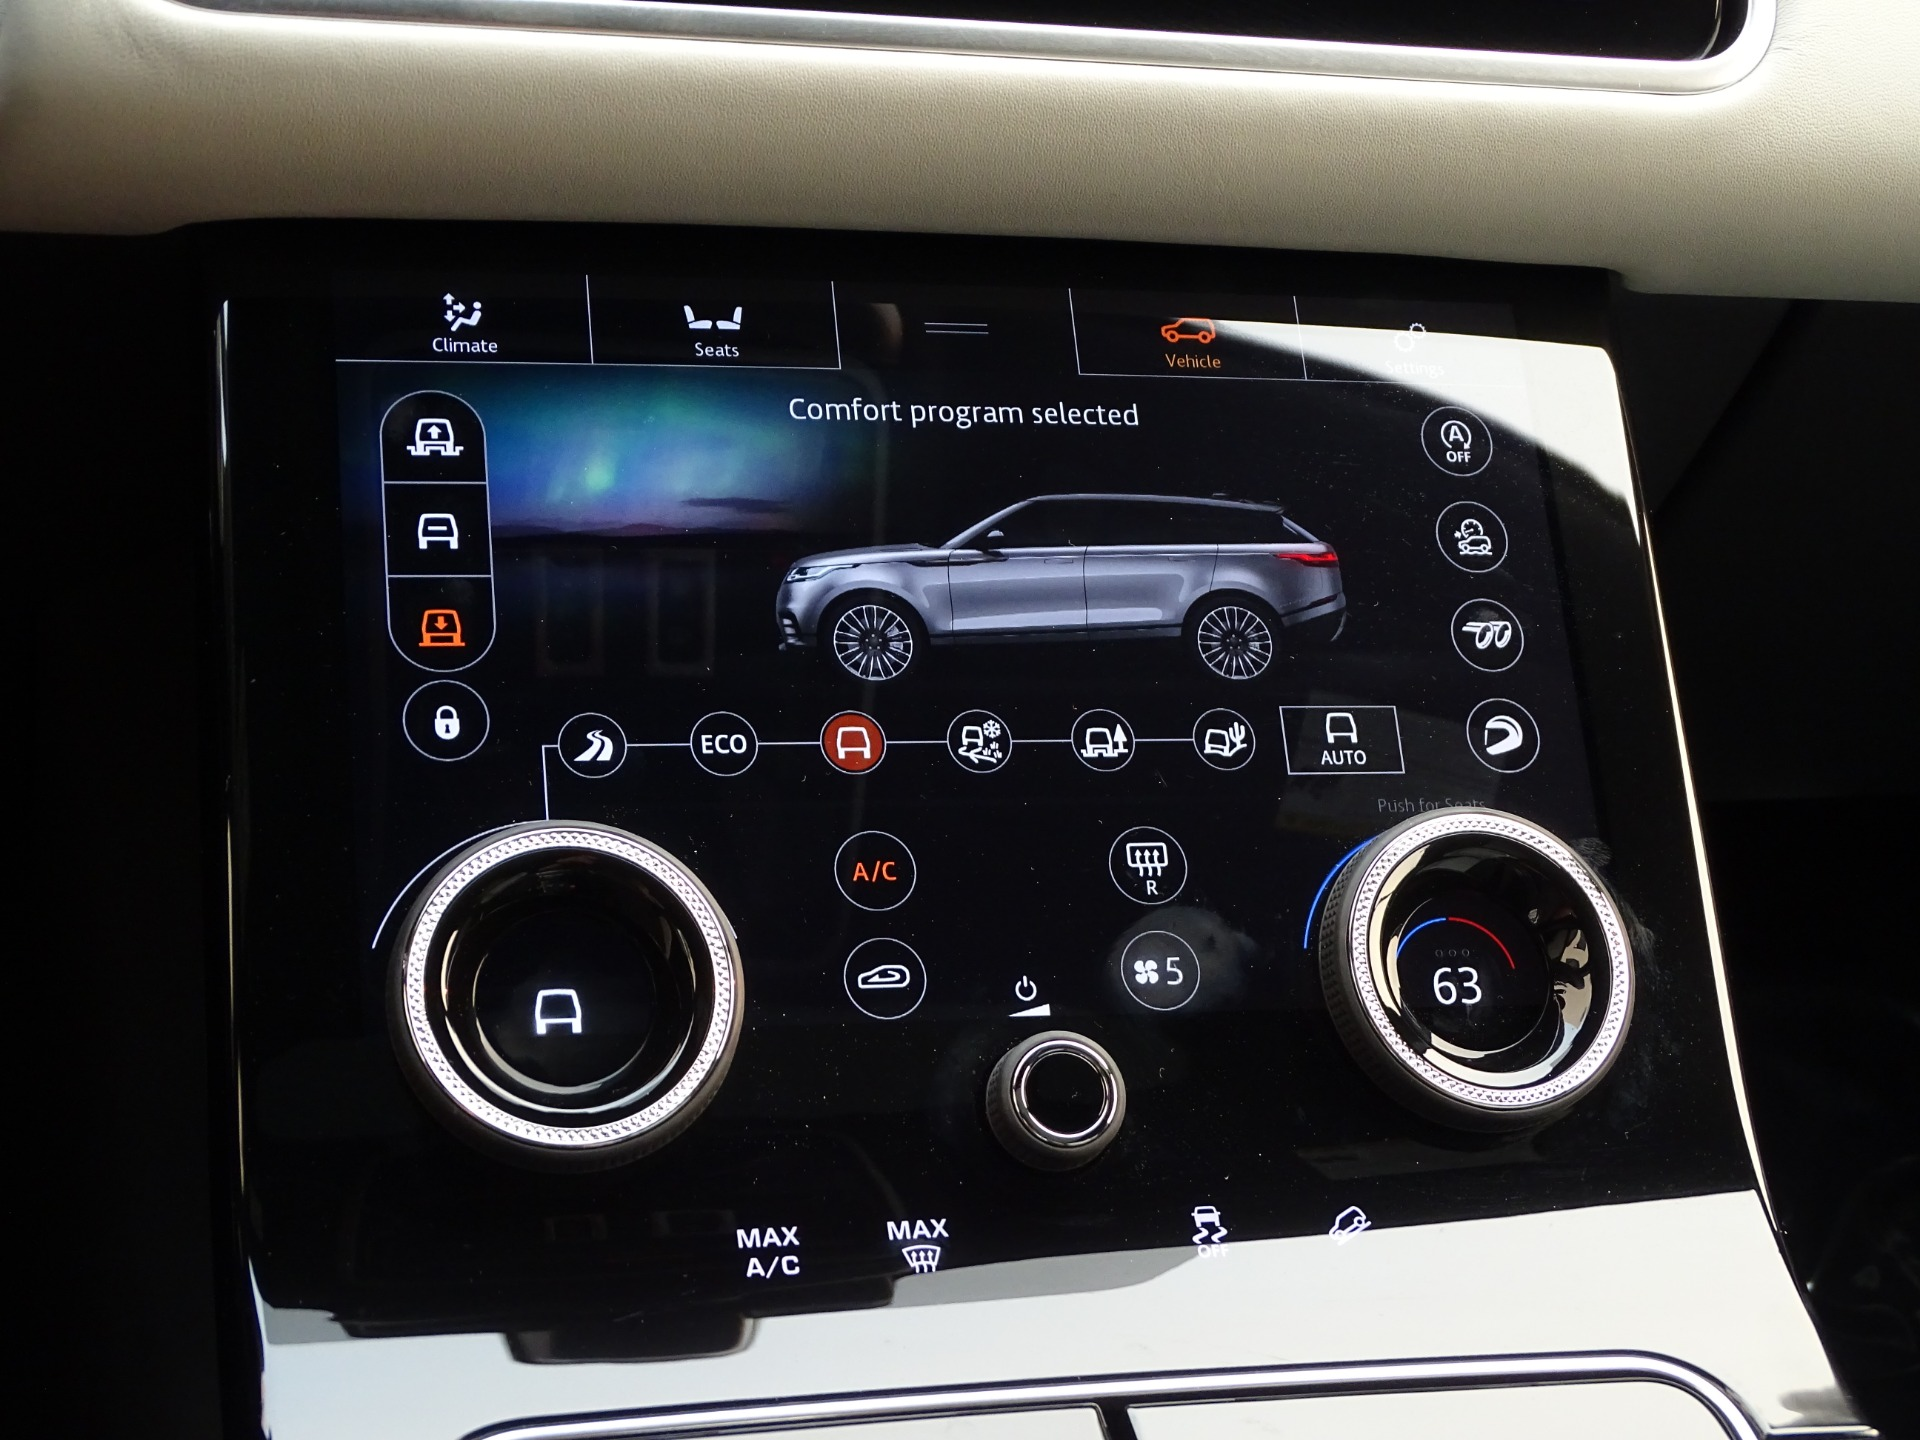 Used-2020-Land-Rover-Range-Rover-Velar-SVAutobiography-Dynamic-Edition